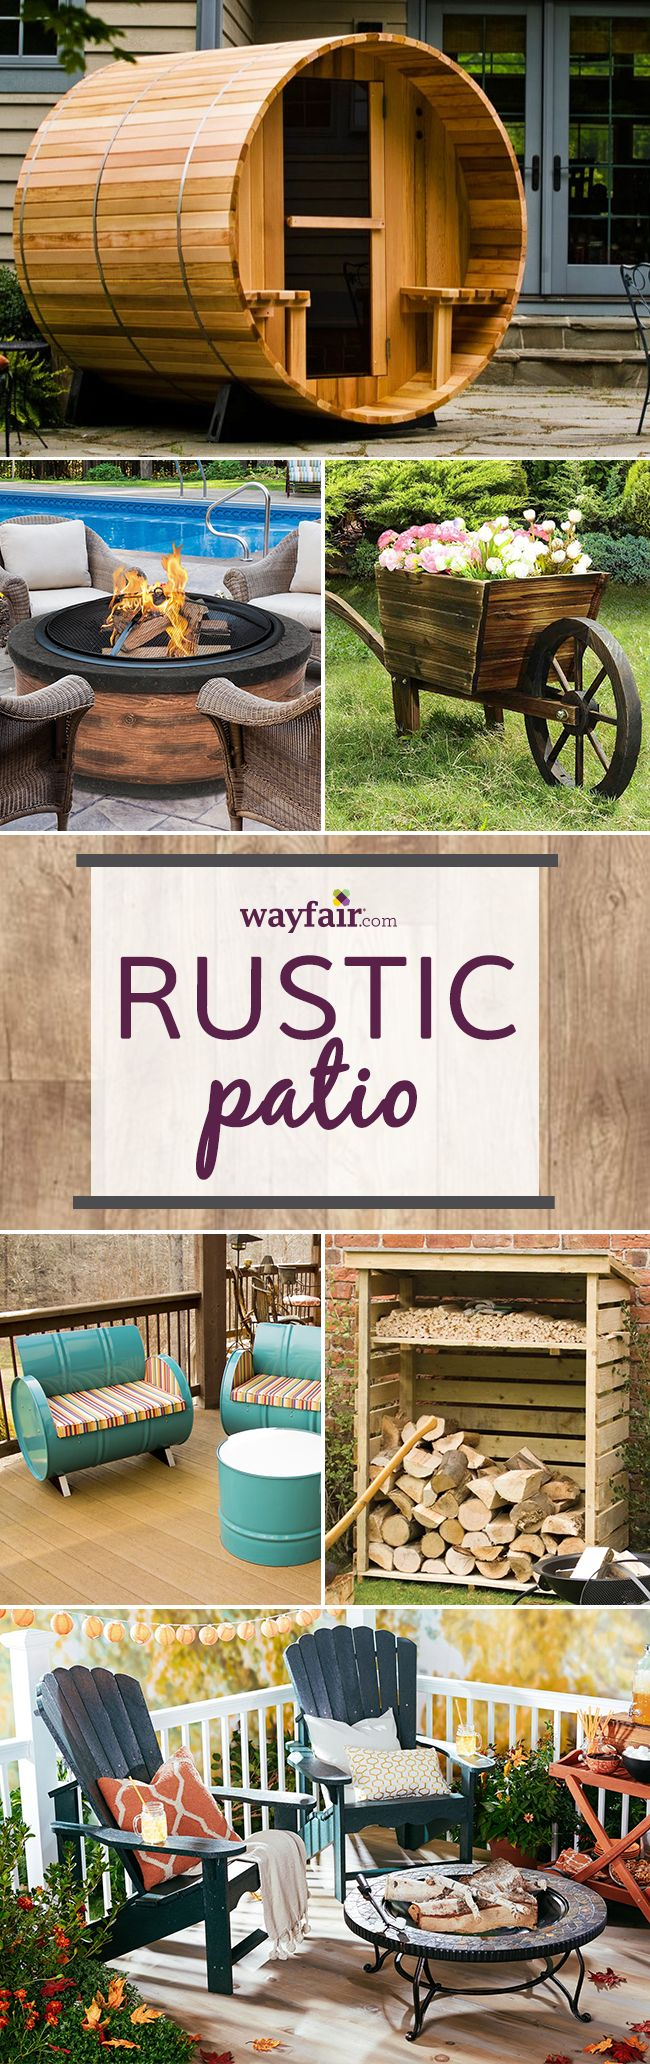 Want to go rustic? Bring this natural, simple and rugged look to your own backyard. Visit Wayfair and sign up today to get access to exclusive deals everyday up to 70% off. Free shipping on all orders over $49.